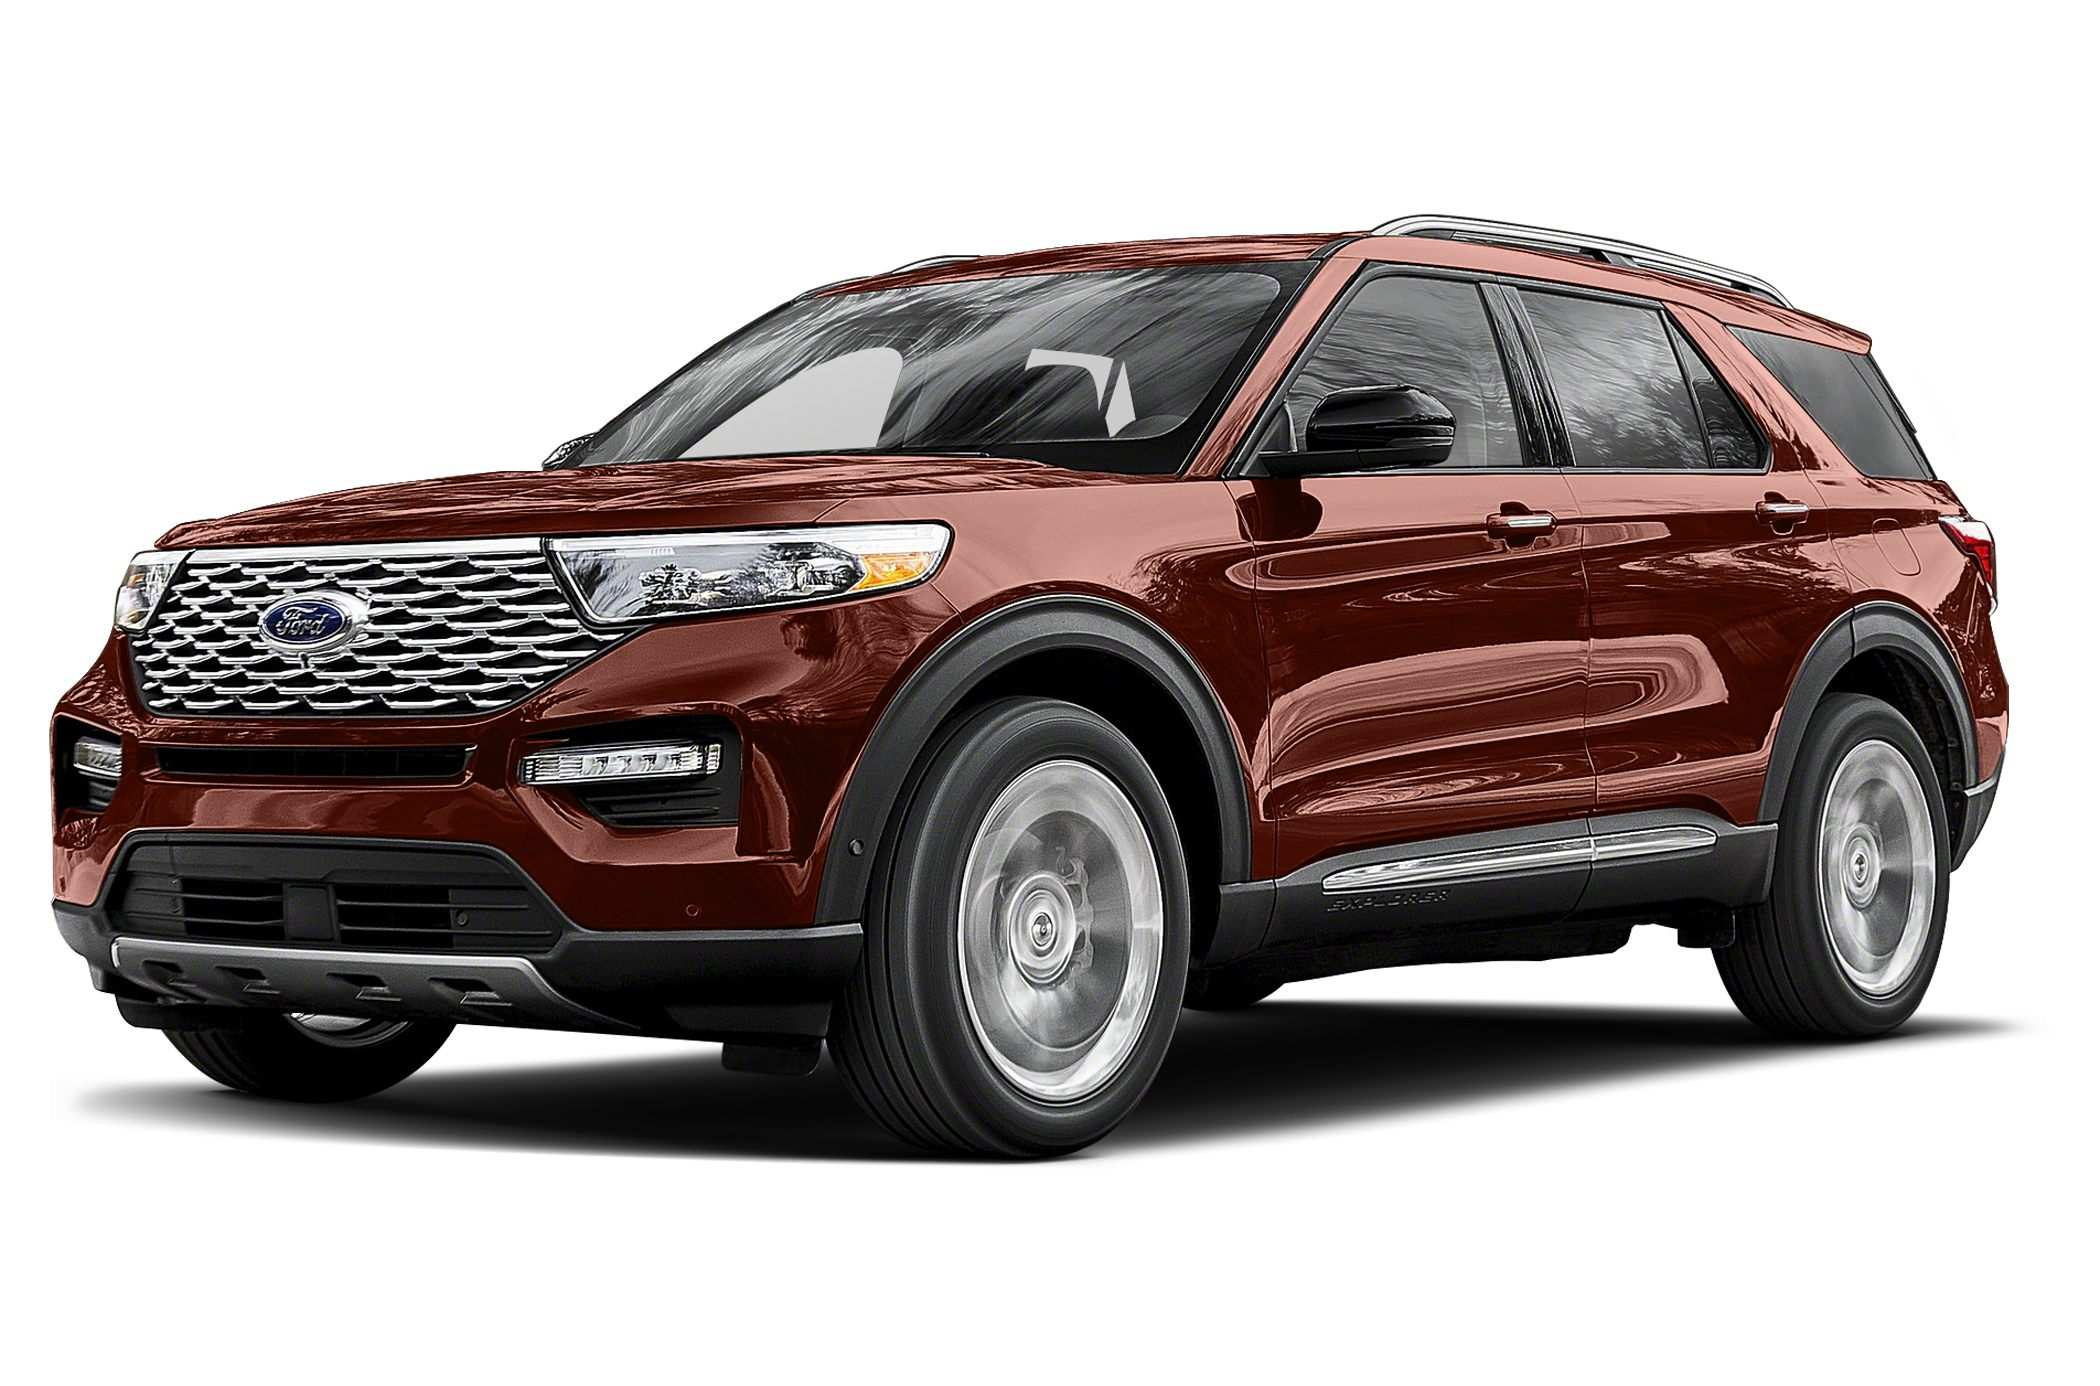 60 The Best 2020 Ford Explorer Xlt Specs Style